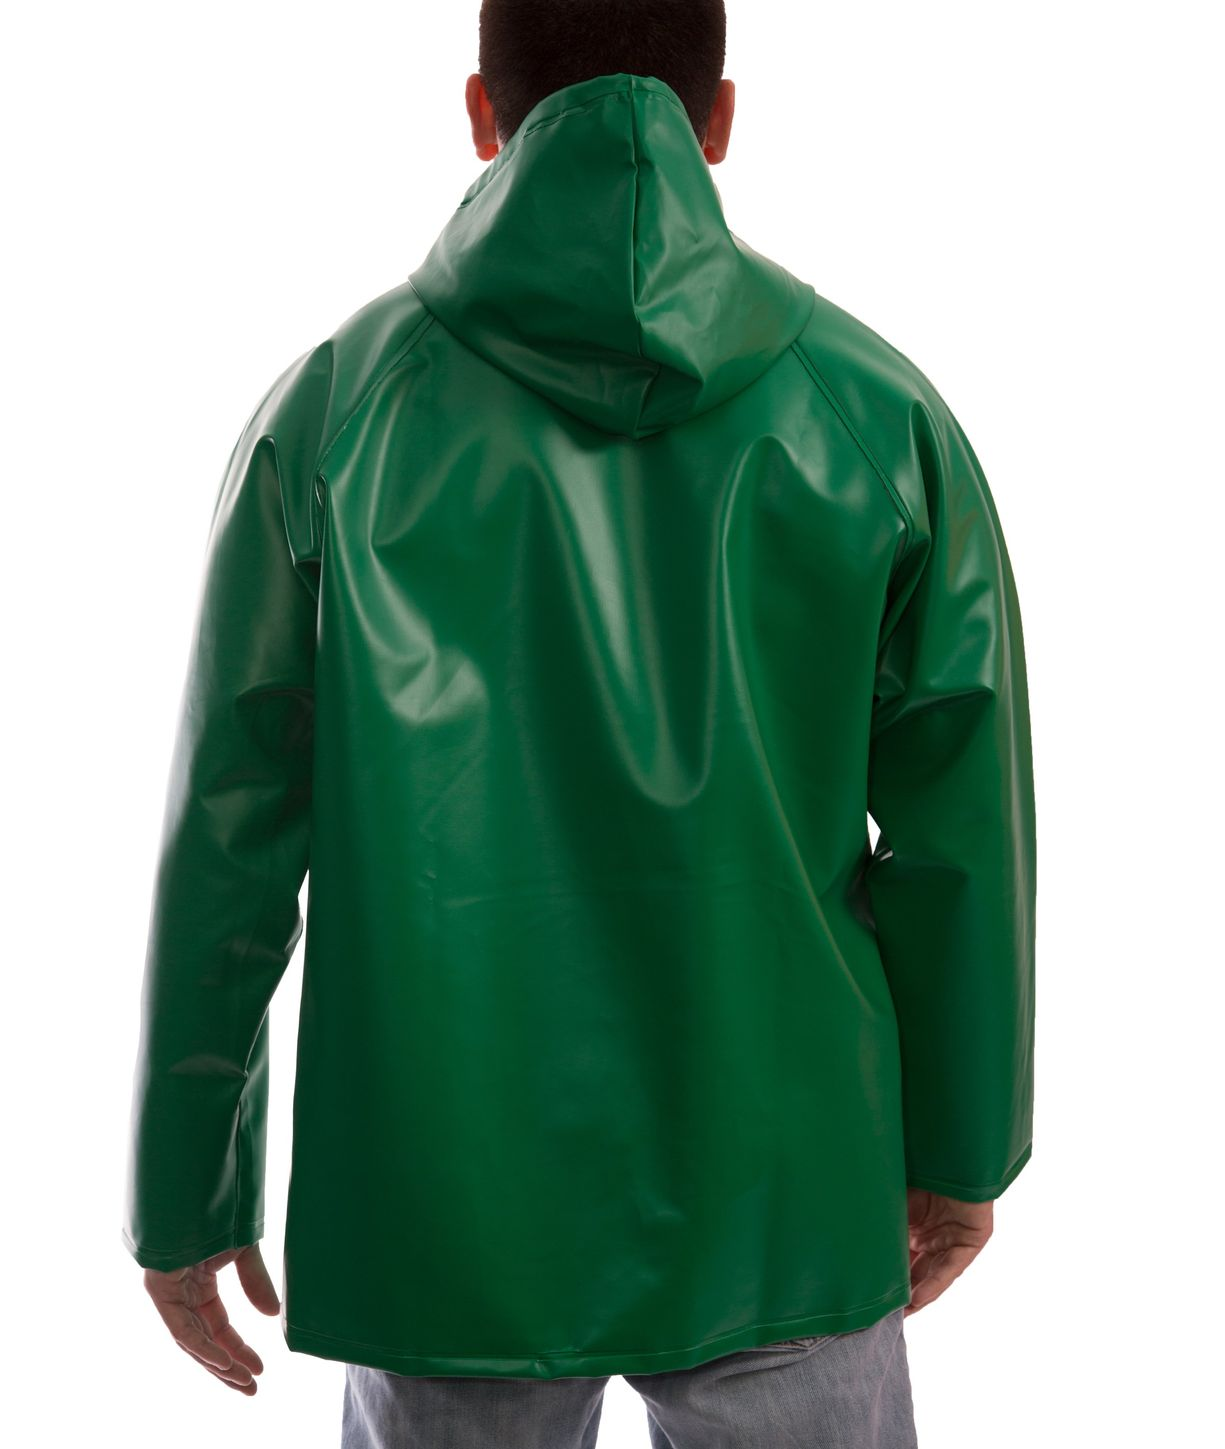 tingley-j41108-safetyflex-flame-resistant-jacket-pvc-coated-chemical-resistant-with-attached-hood-back.jpg